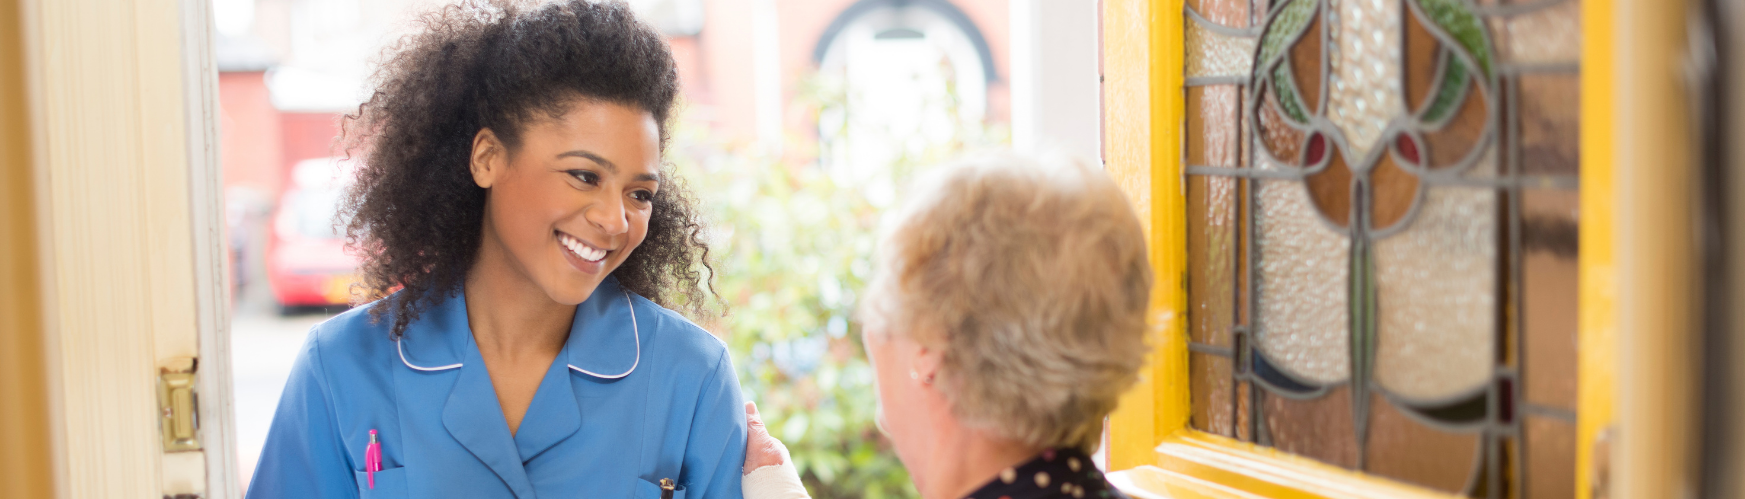 City & Guilds RQF Health and Social Care Diploma Courses for Adults and Children